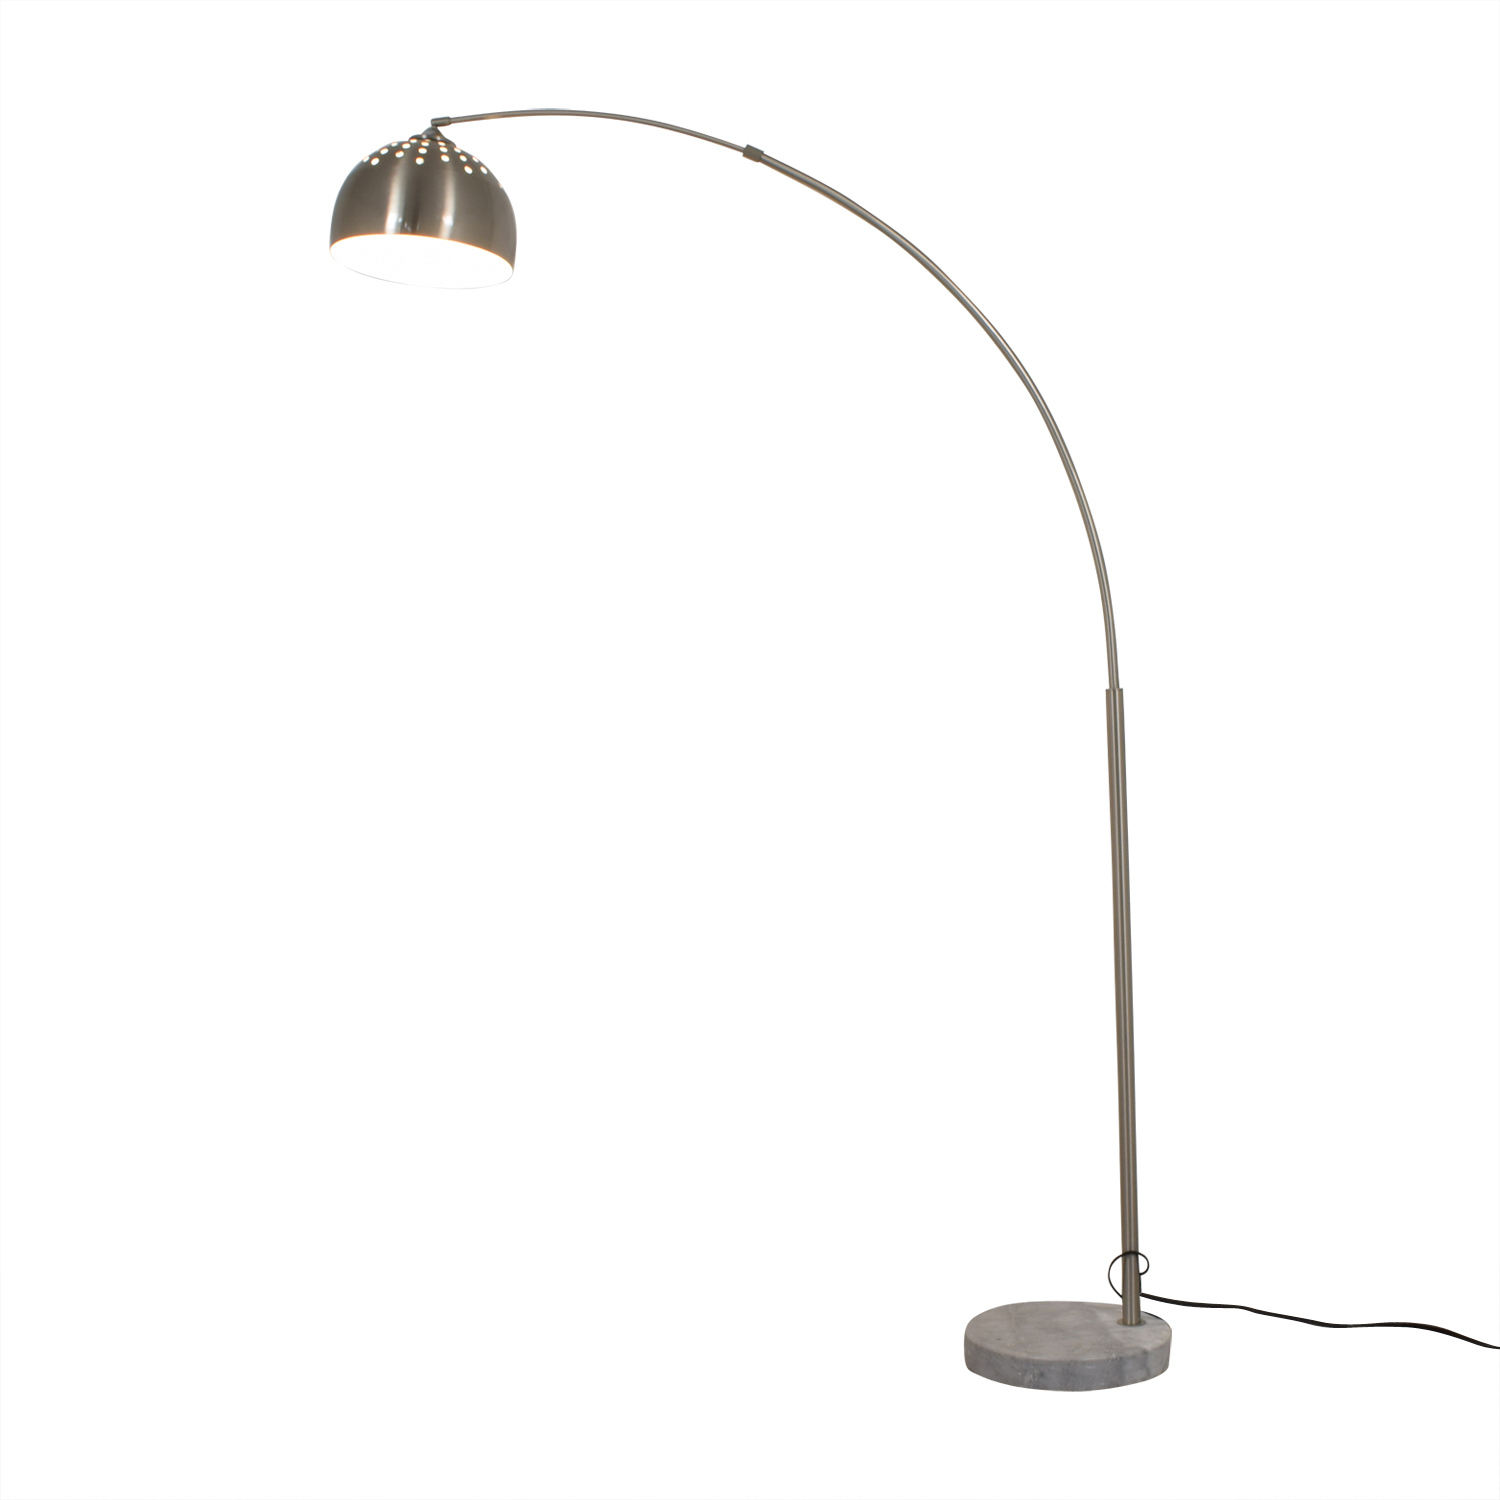 Coaster Home Furnishings Arched Chrome Floor Lamp sale